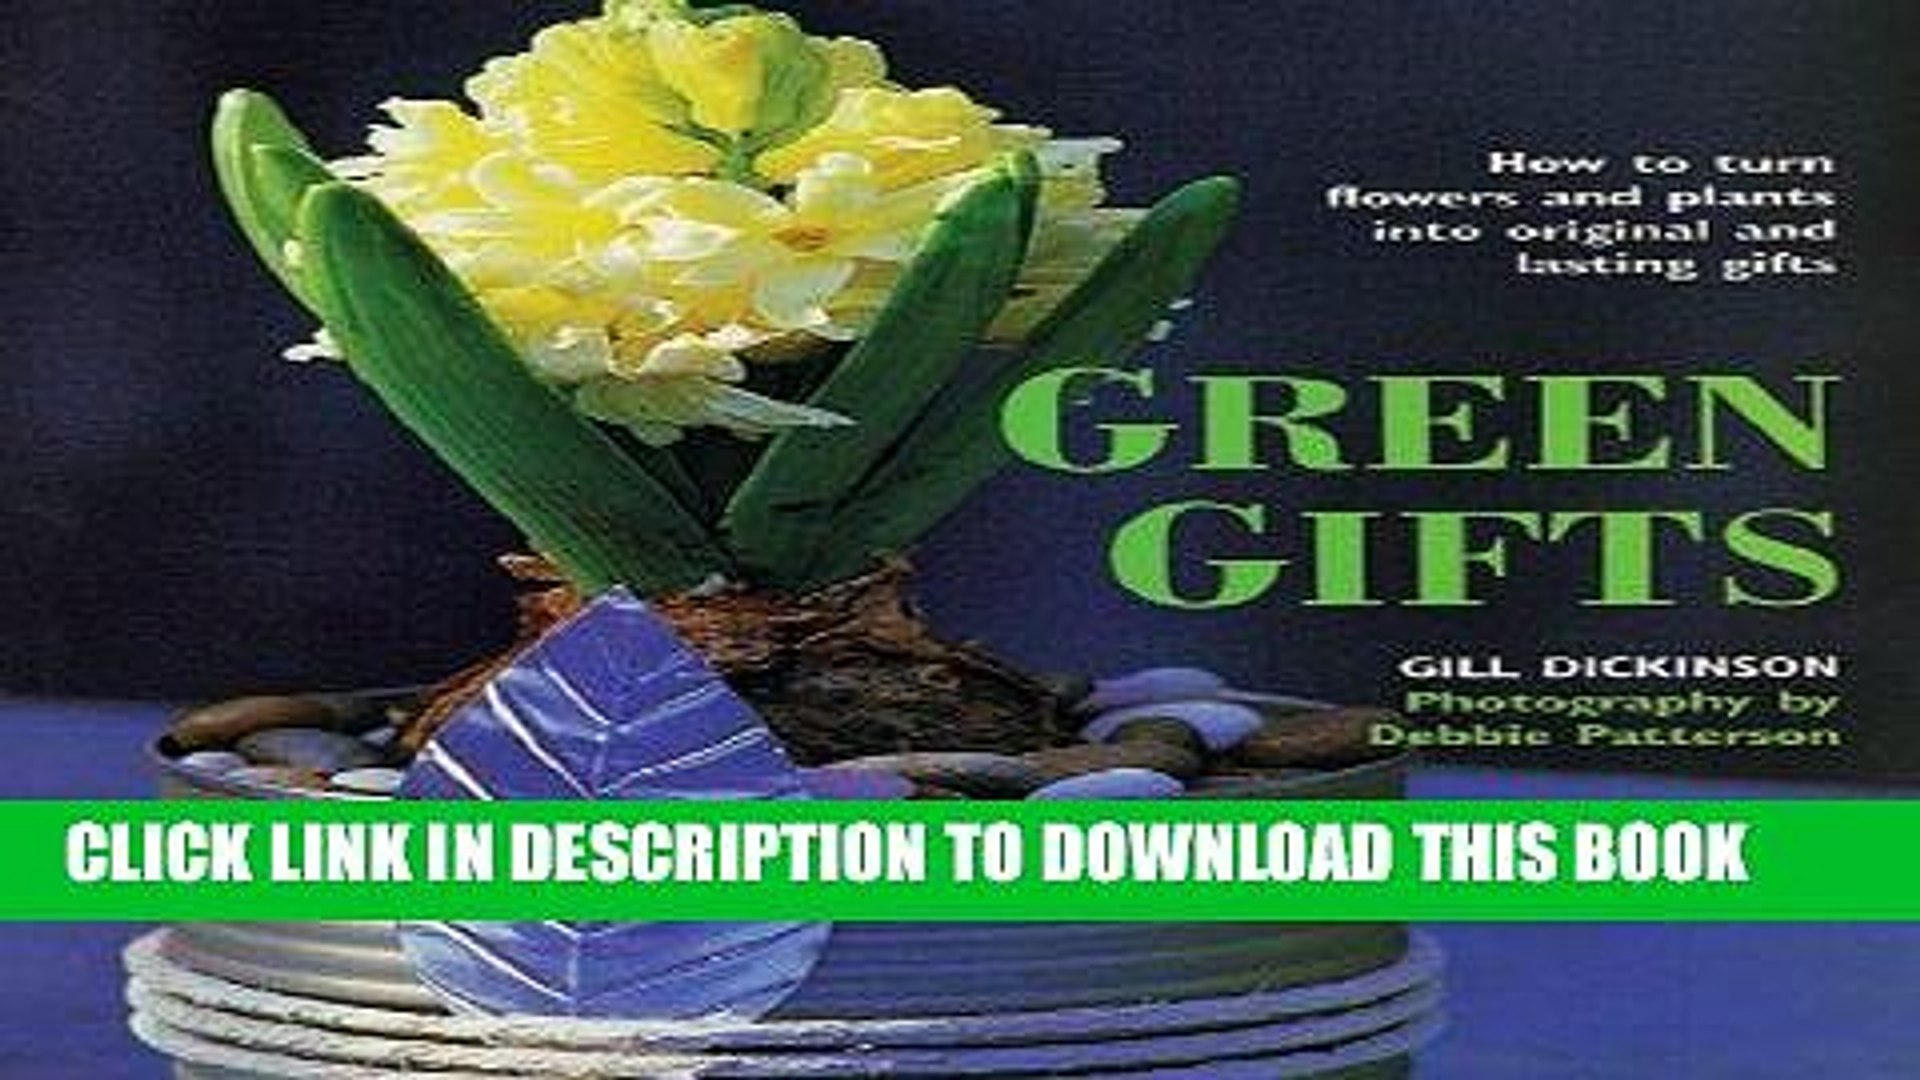 Ebook Green Gifts: How to Turn Flowers and Plants into Original and Lasting Gifts Free Download